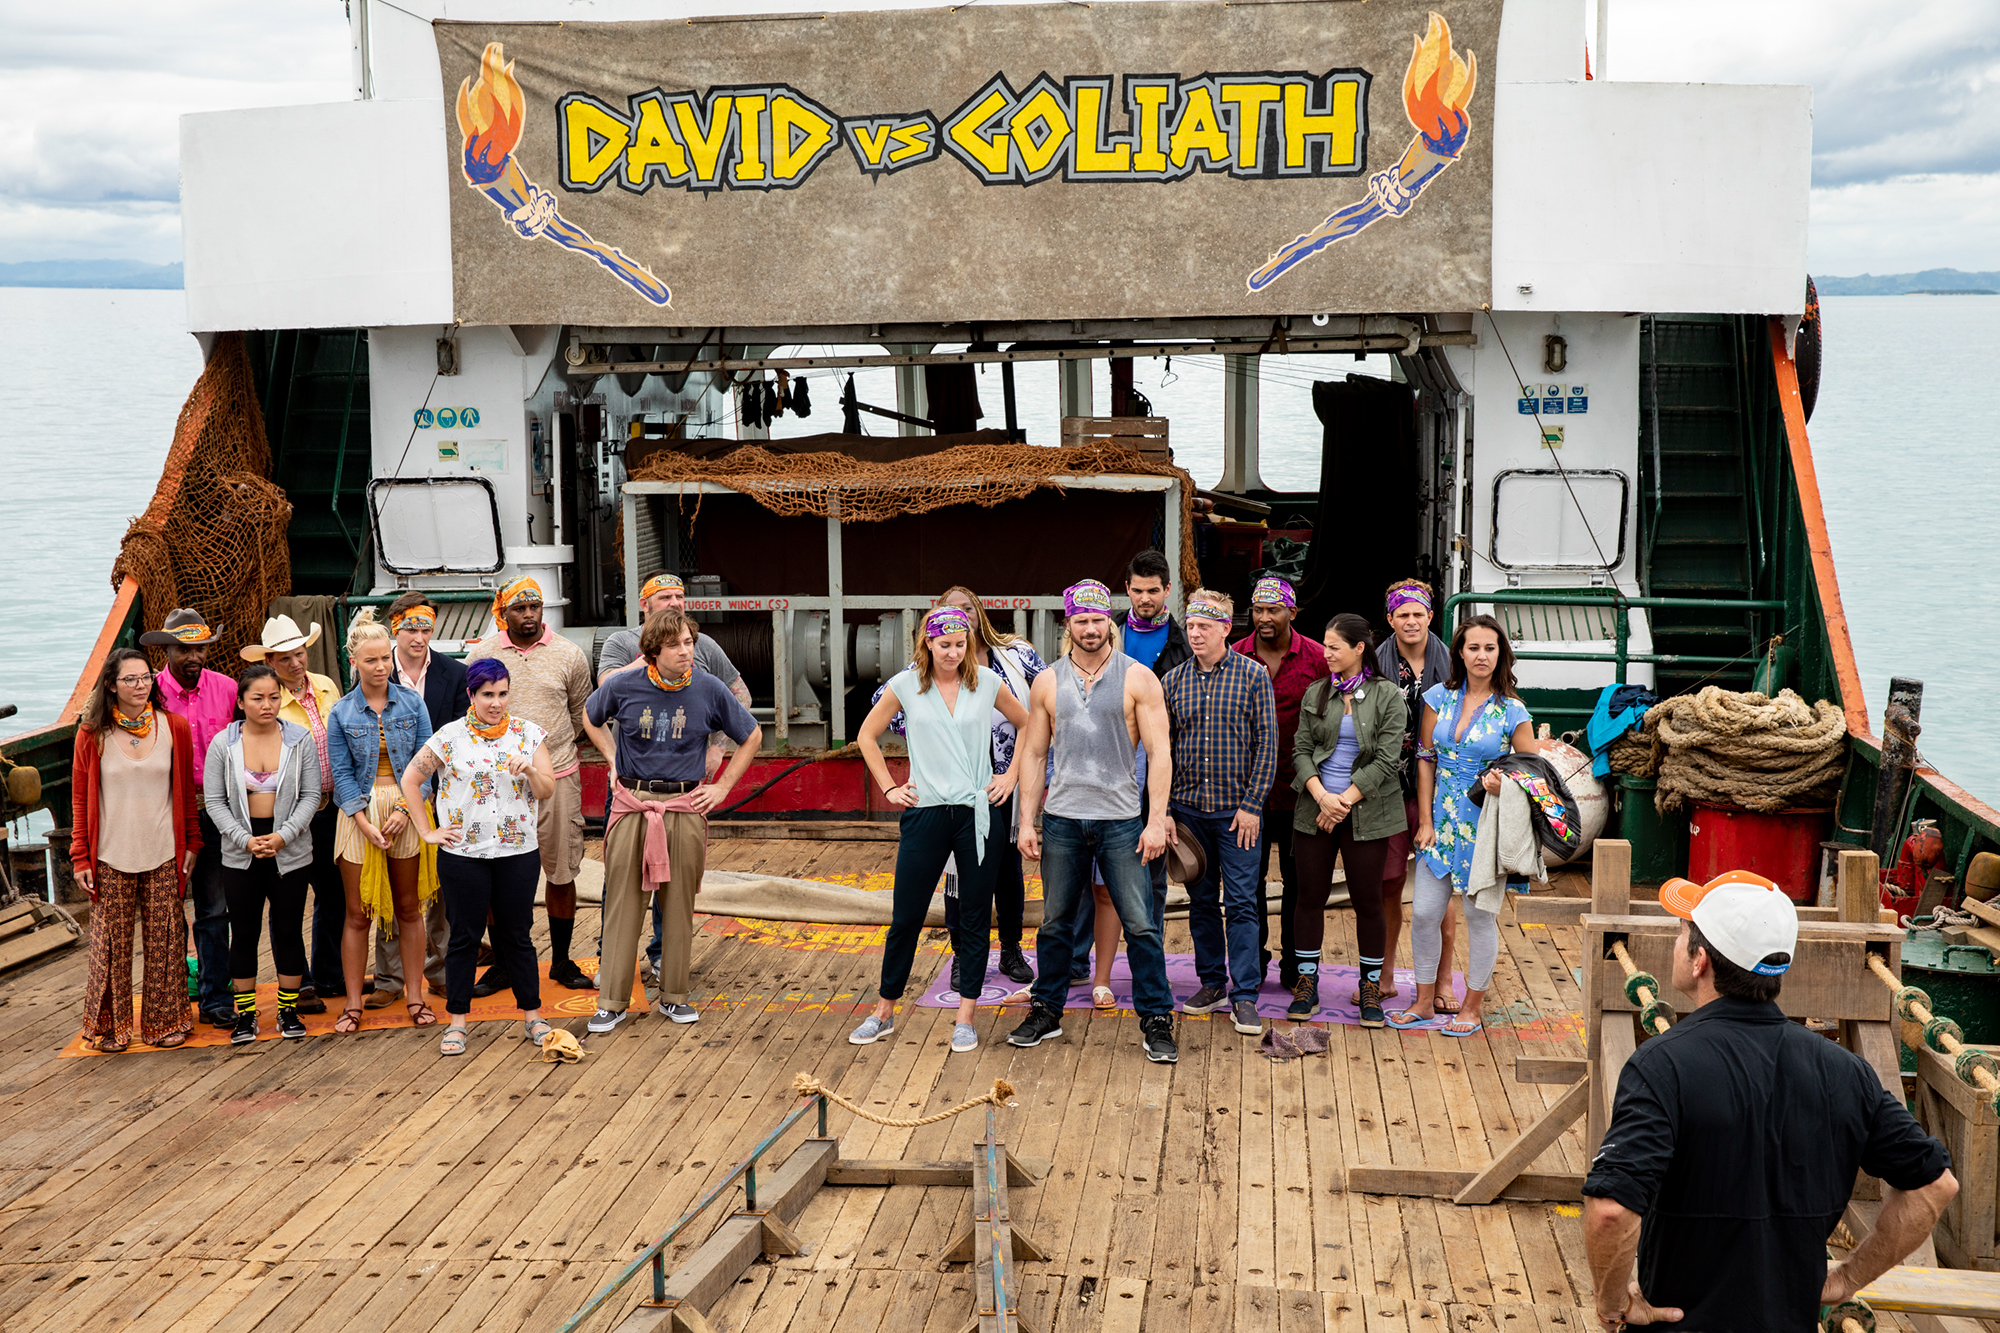 Jeff Probst addresses the David and Goliath Tribes